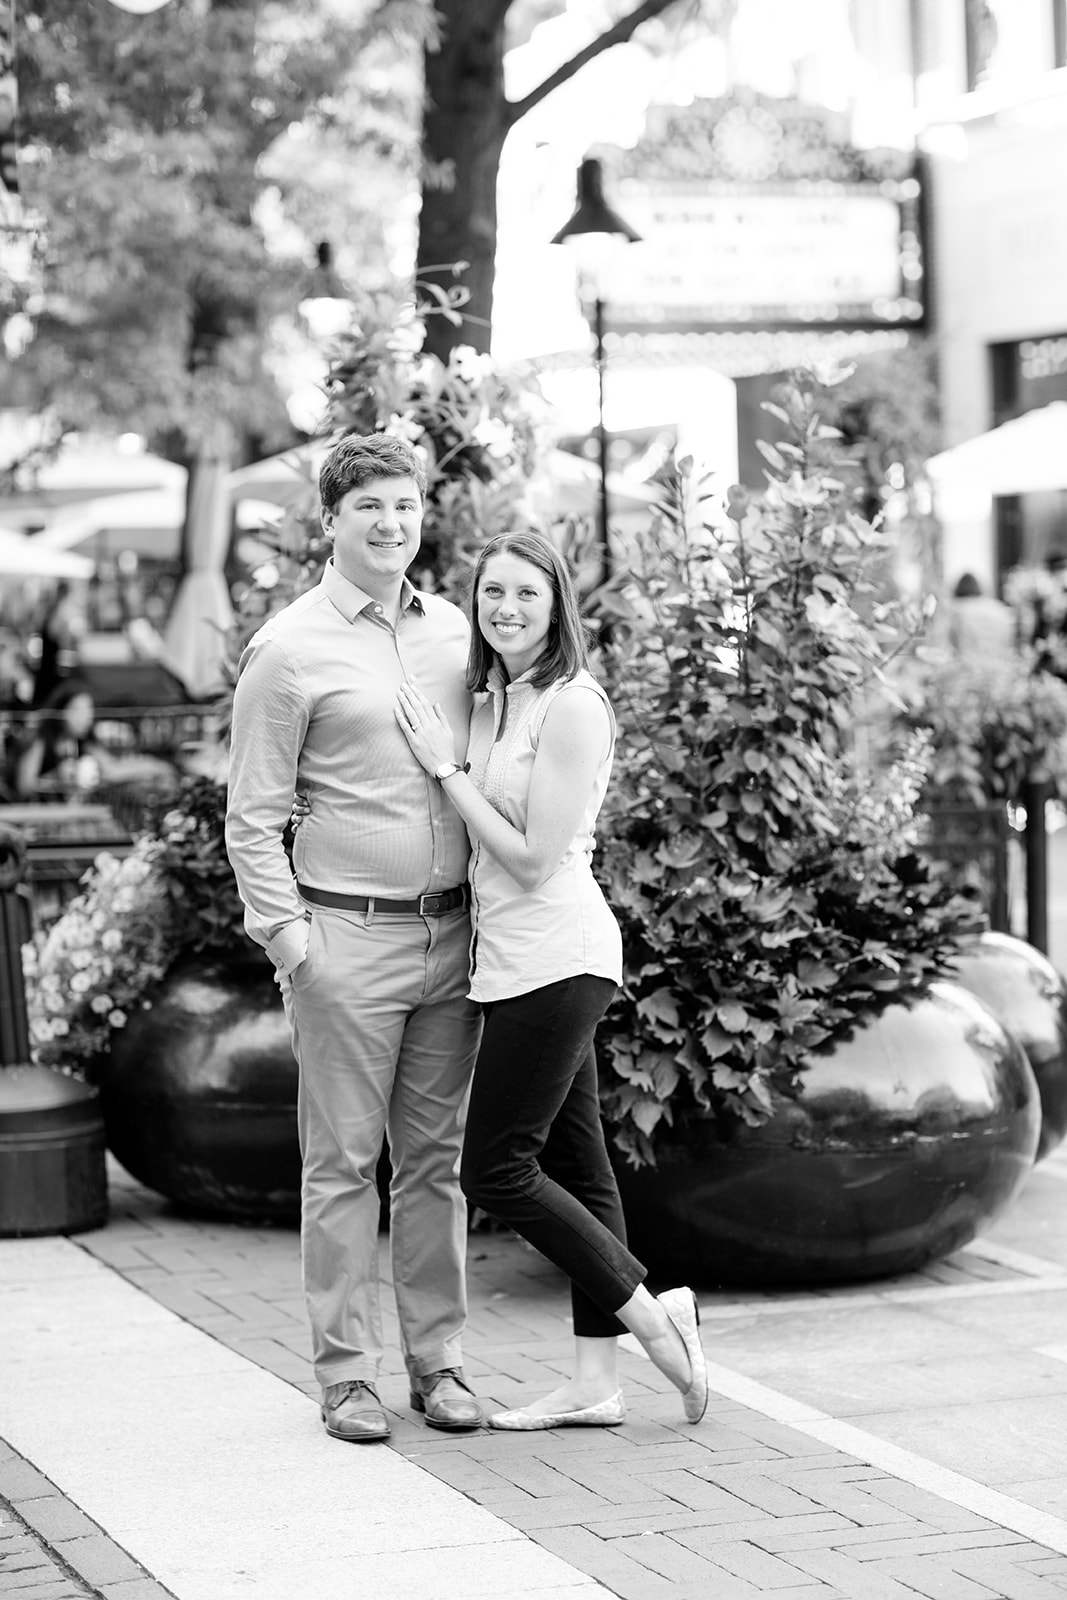 Downtown Mall Couples Photo Shoot Charlottesville Va Photographer - Image Property of www.j-dphoto.com